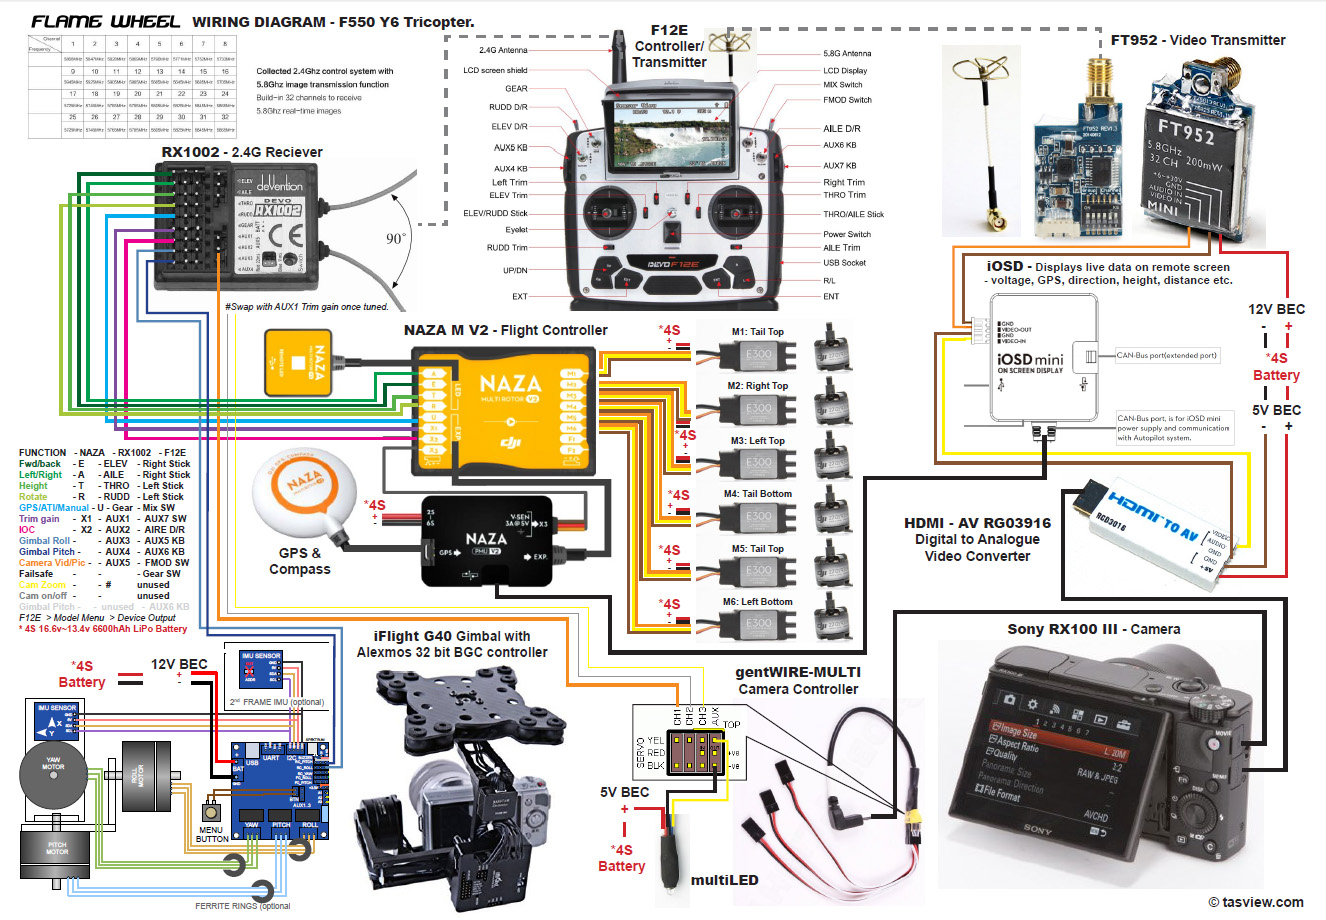 wiring_diagram f550y6?w=700 f500, rx100, g40 wiring tasview naza lite wiring diagram at n-0.co